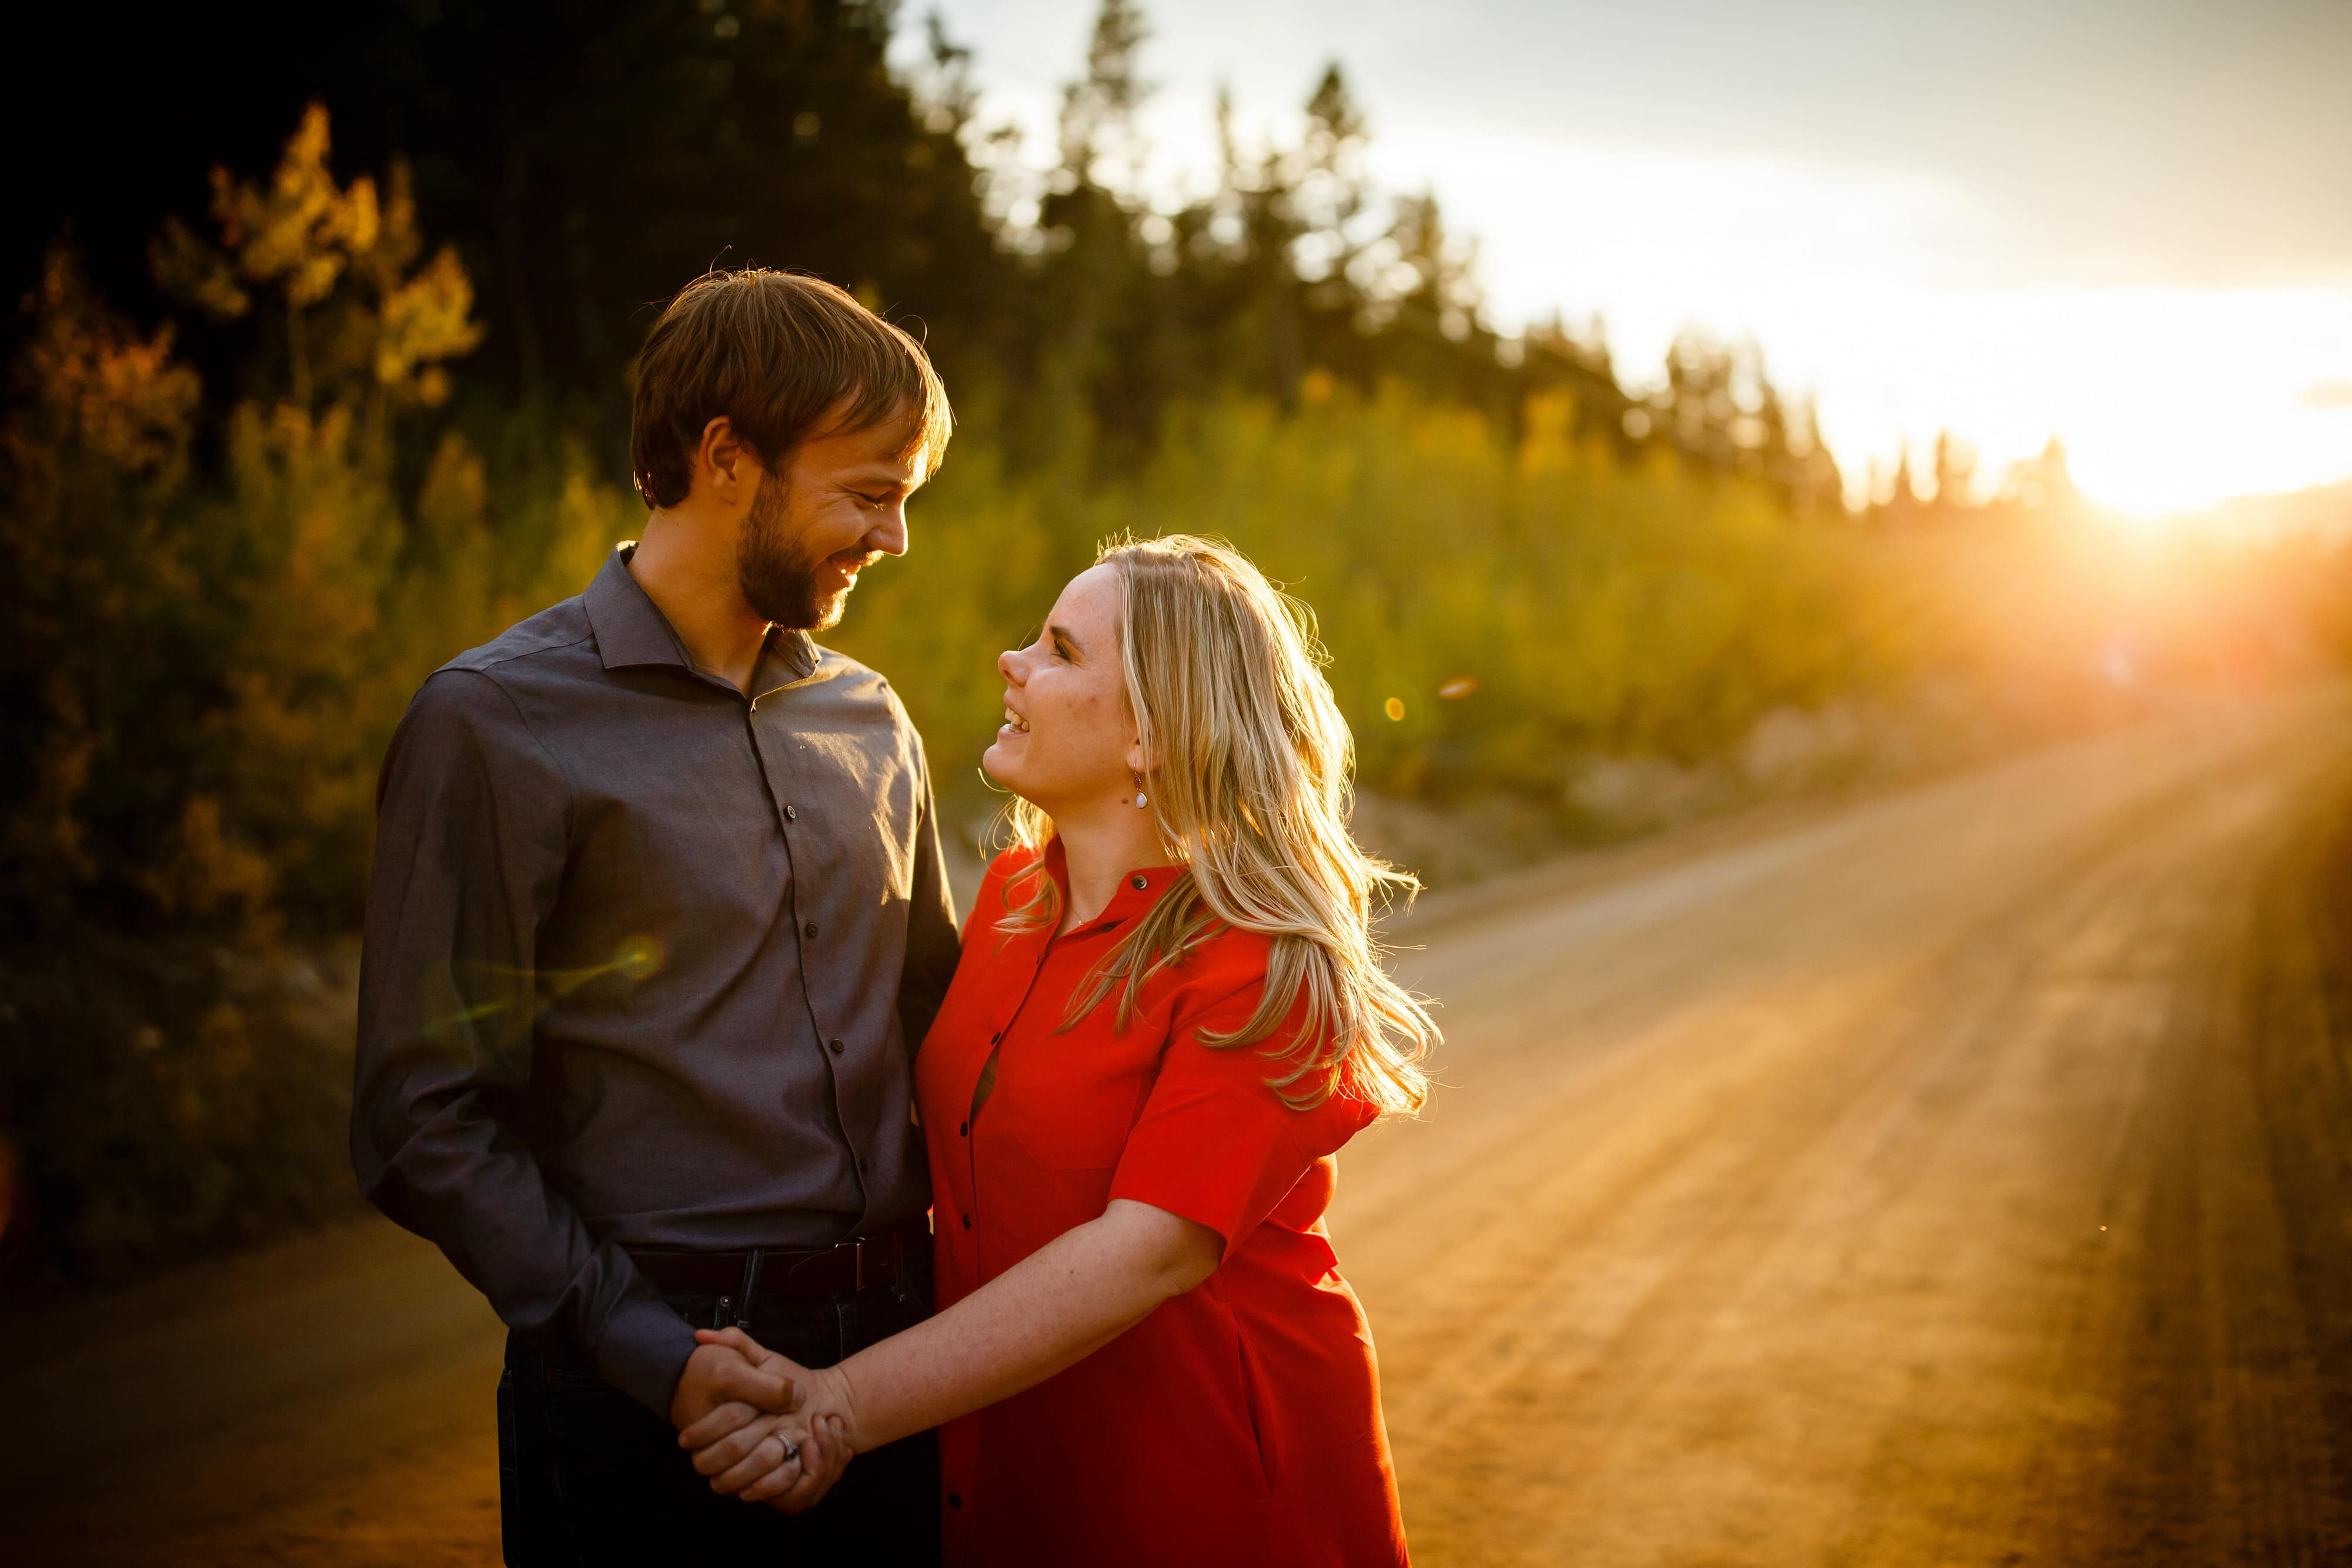 Coza and Joel share a moment during their fall Golden engagement on Gap road inside Golden Gate Canyon State Park in Colorado